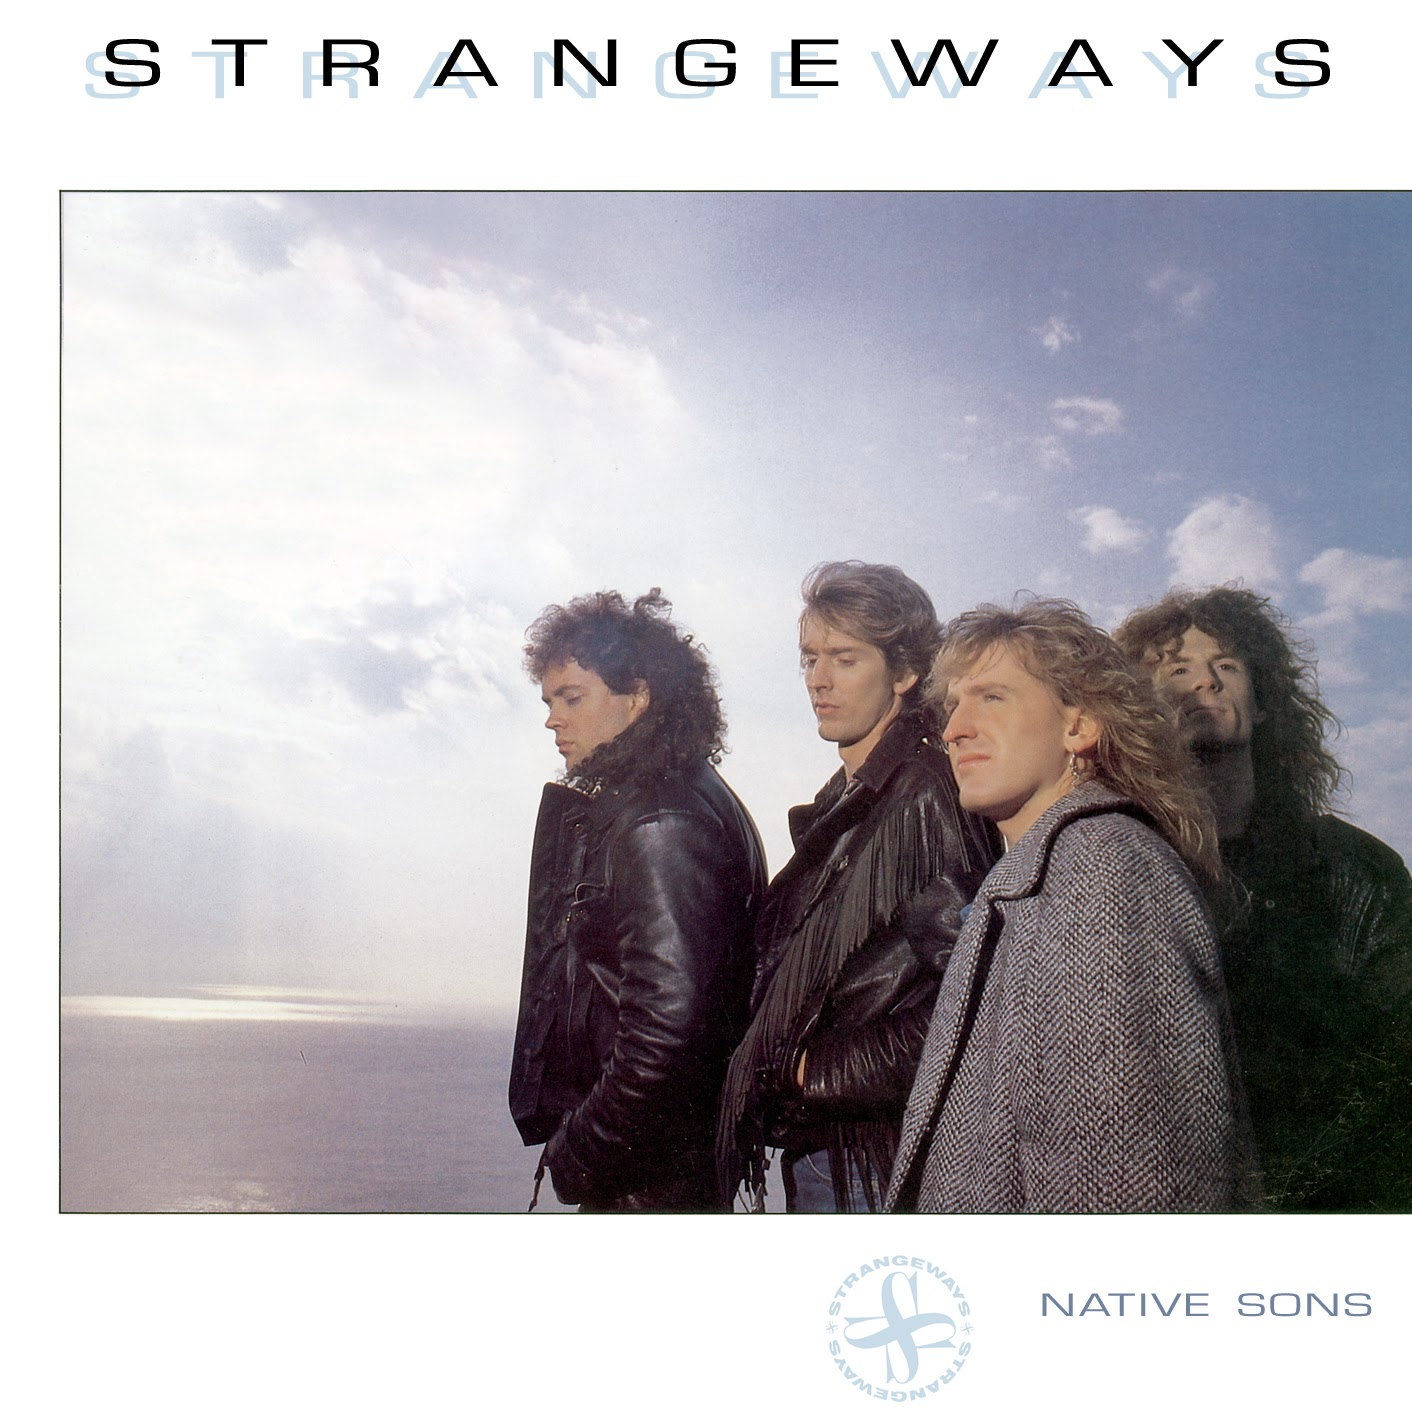 Strangeways Native sons 1987